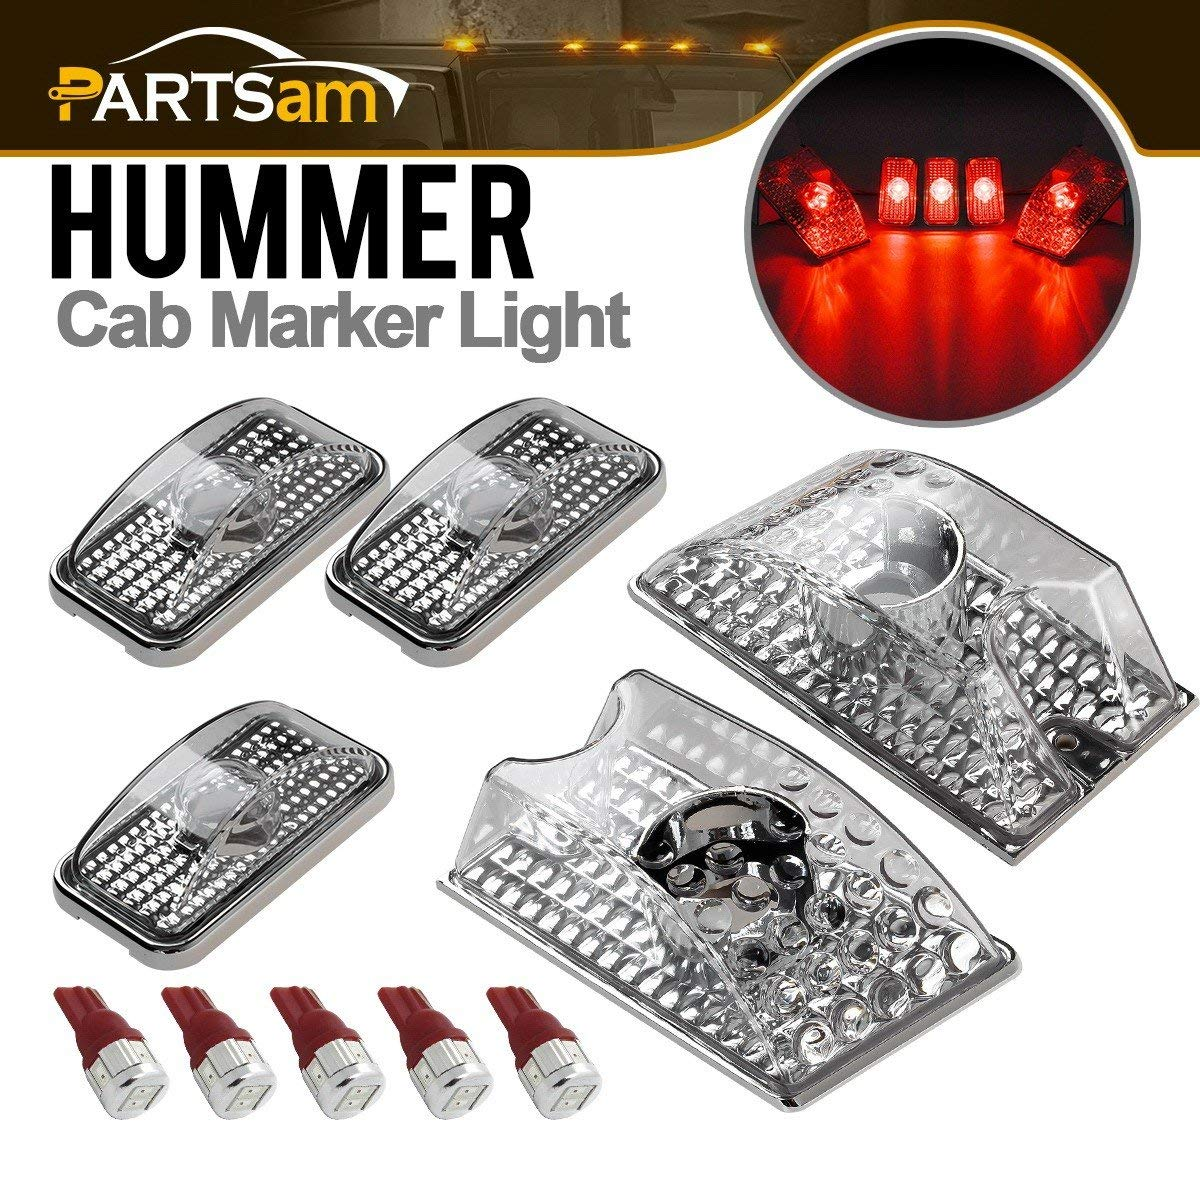 5x 264160BK Smoke Lens Amber Roof Clearance Top Marker Light For 03-09 Hummer H2